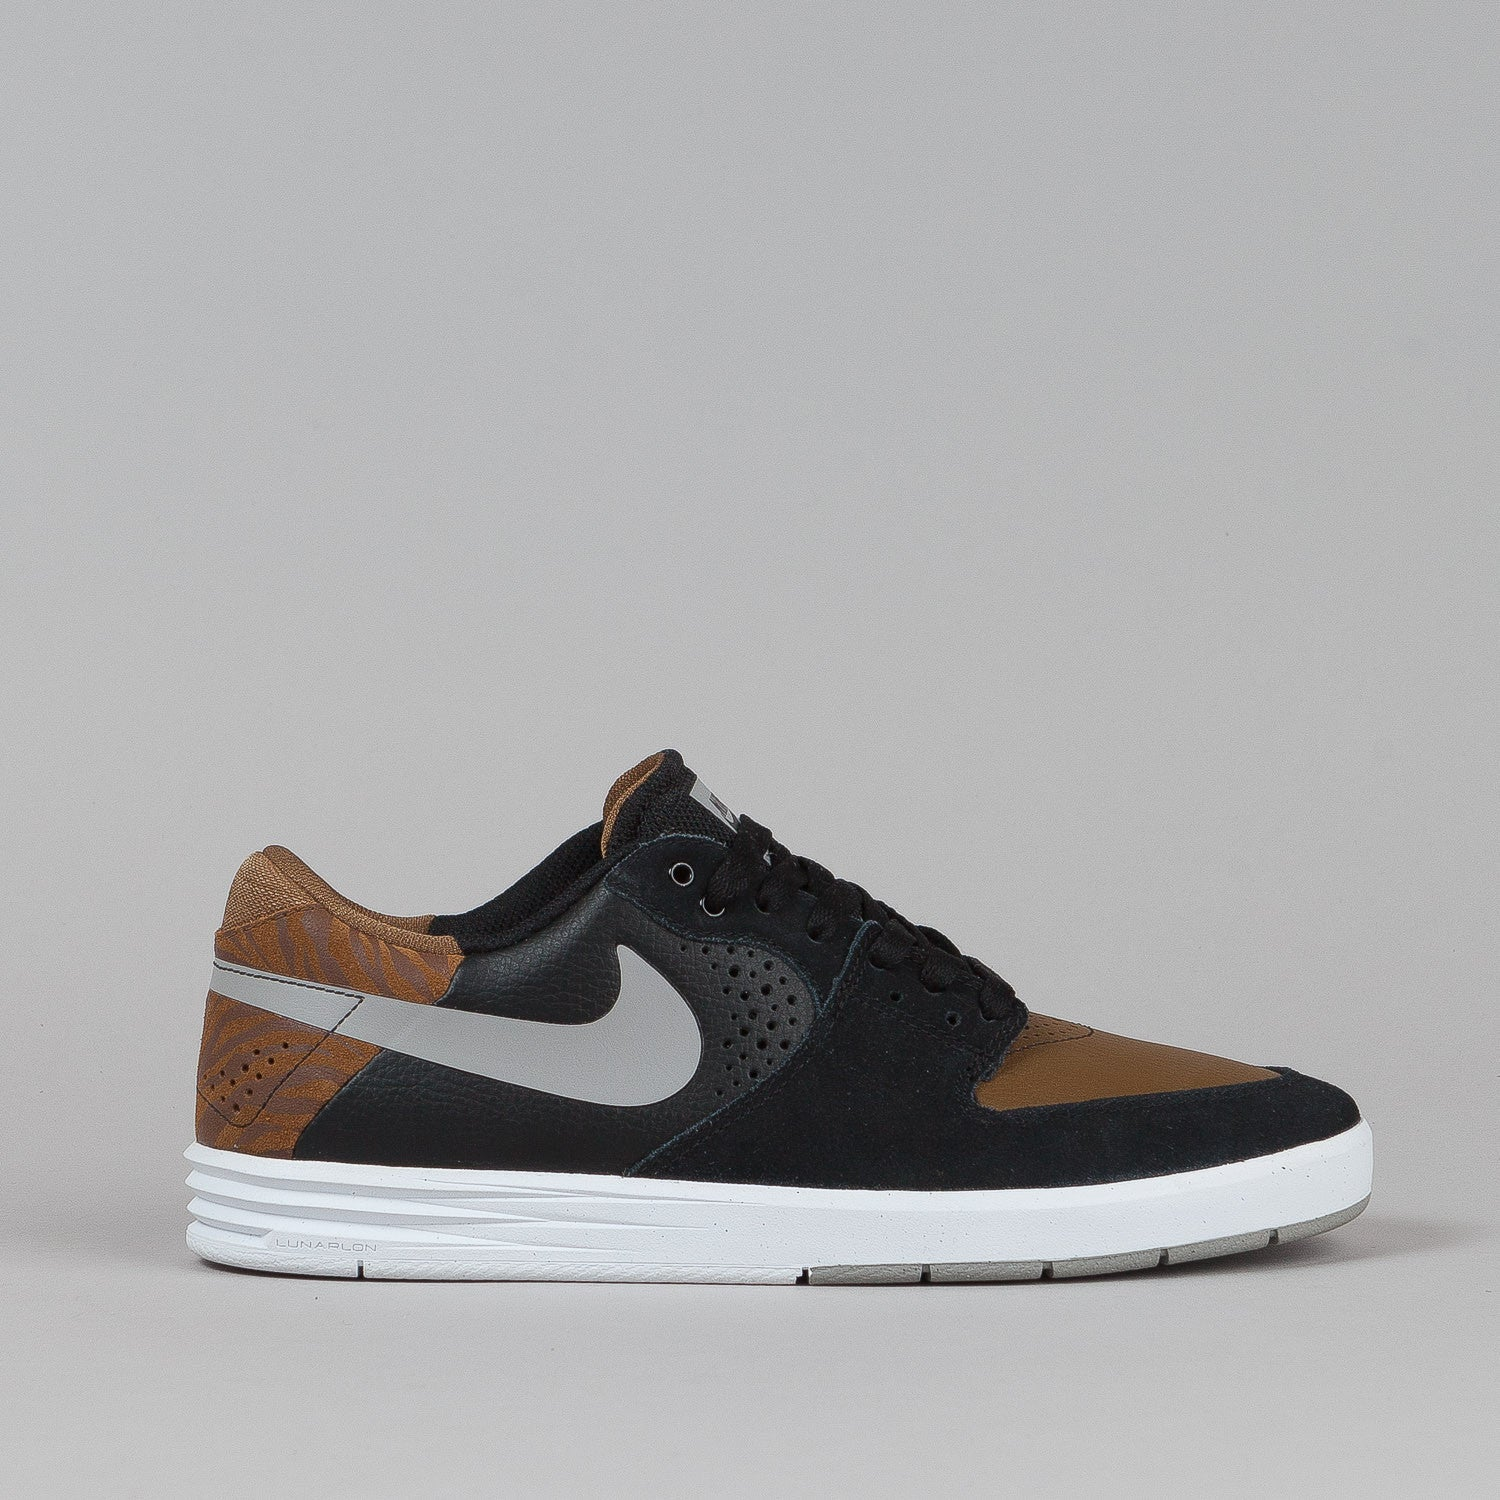 Nike Sb Paul Rodriguez 7 Low Black / Medium Grey / Military Brown